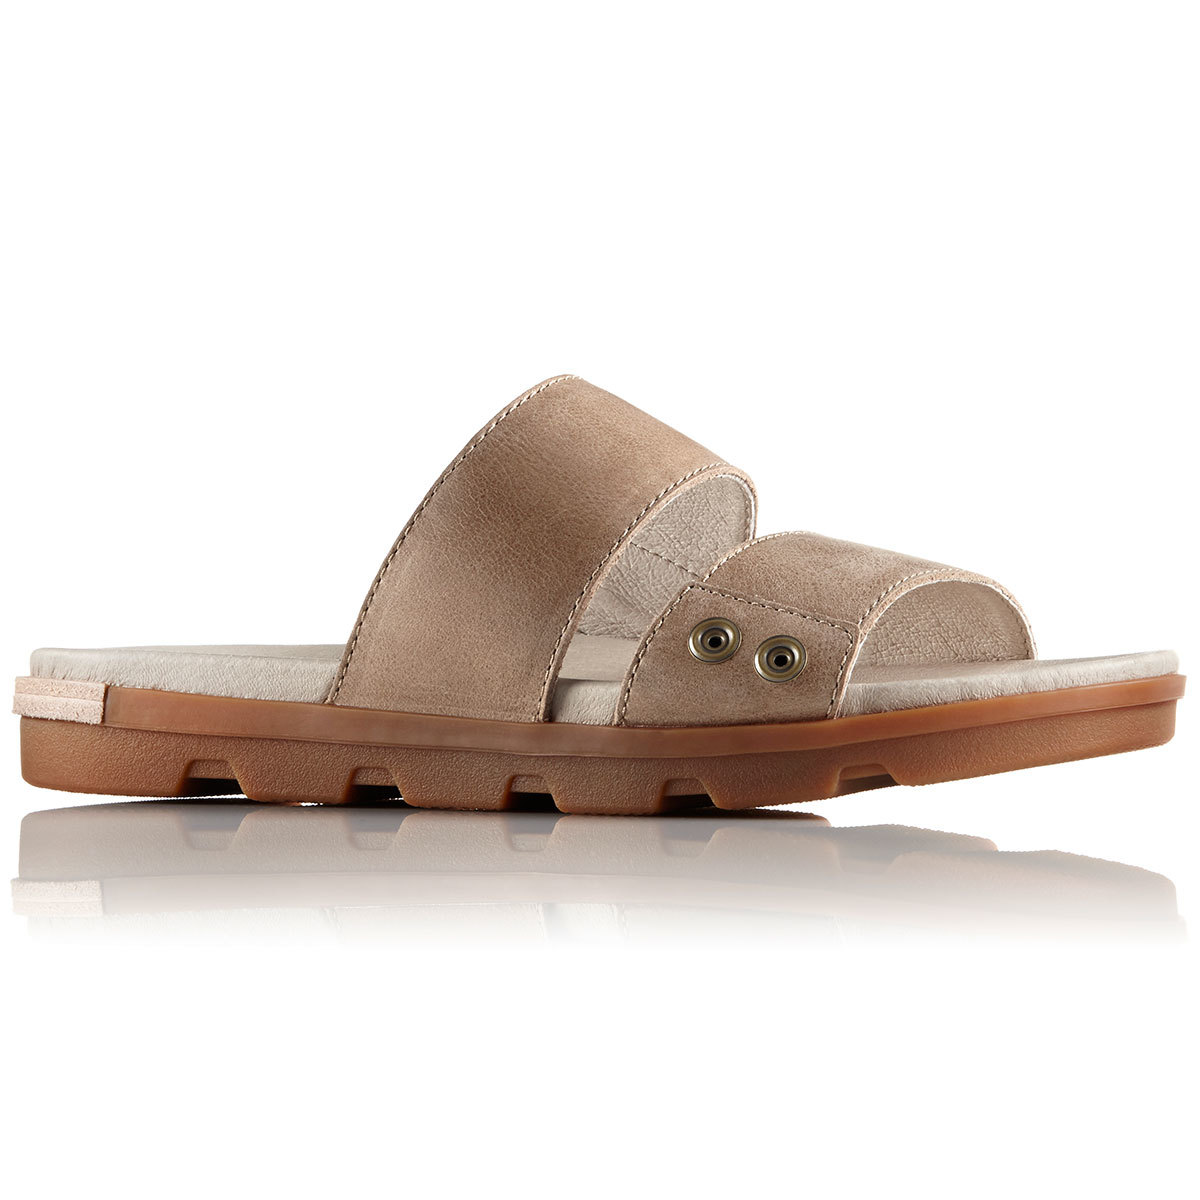 Sorel Women's Torpeda Ii Slide Sandals, Sahara/fossil - White, 9